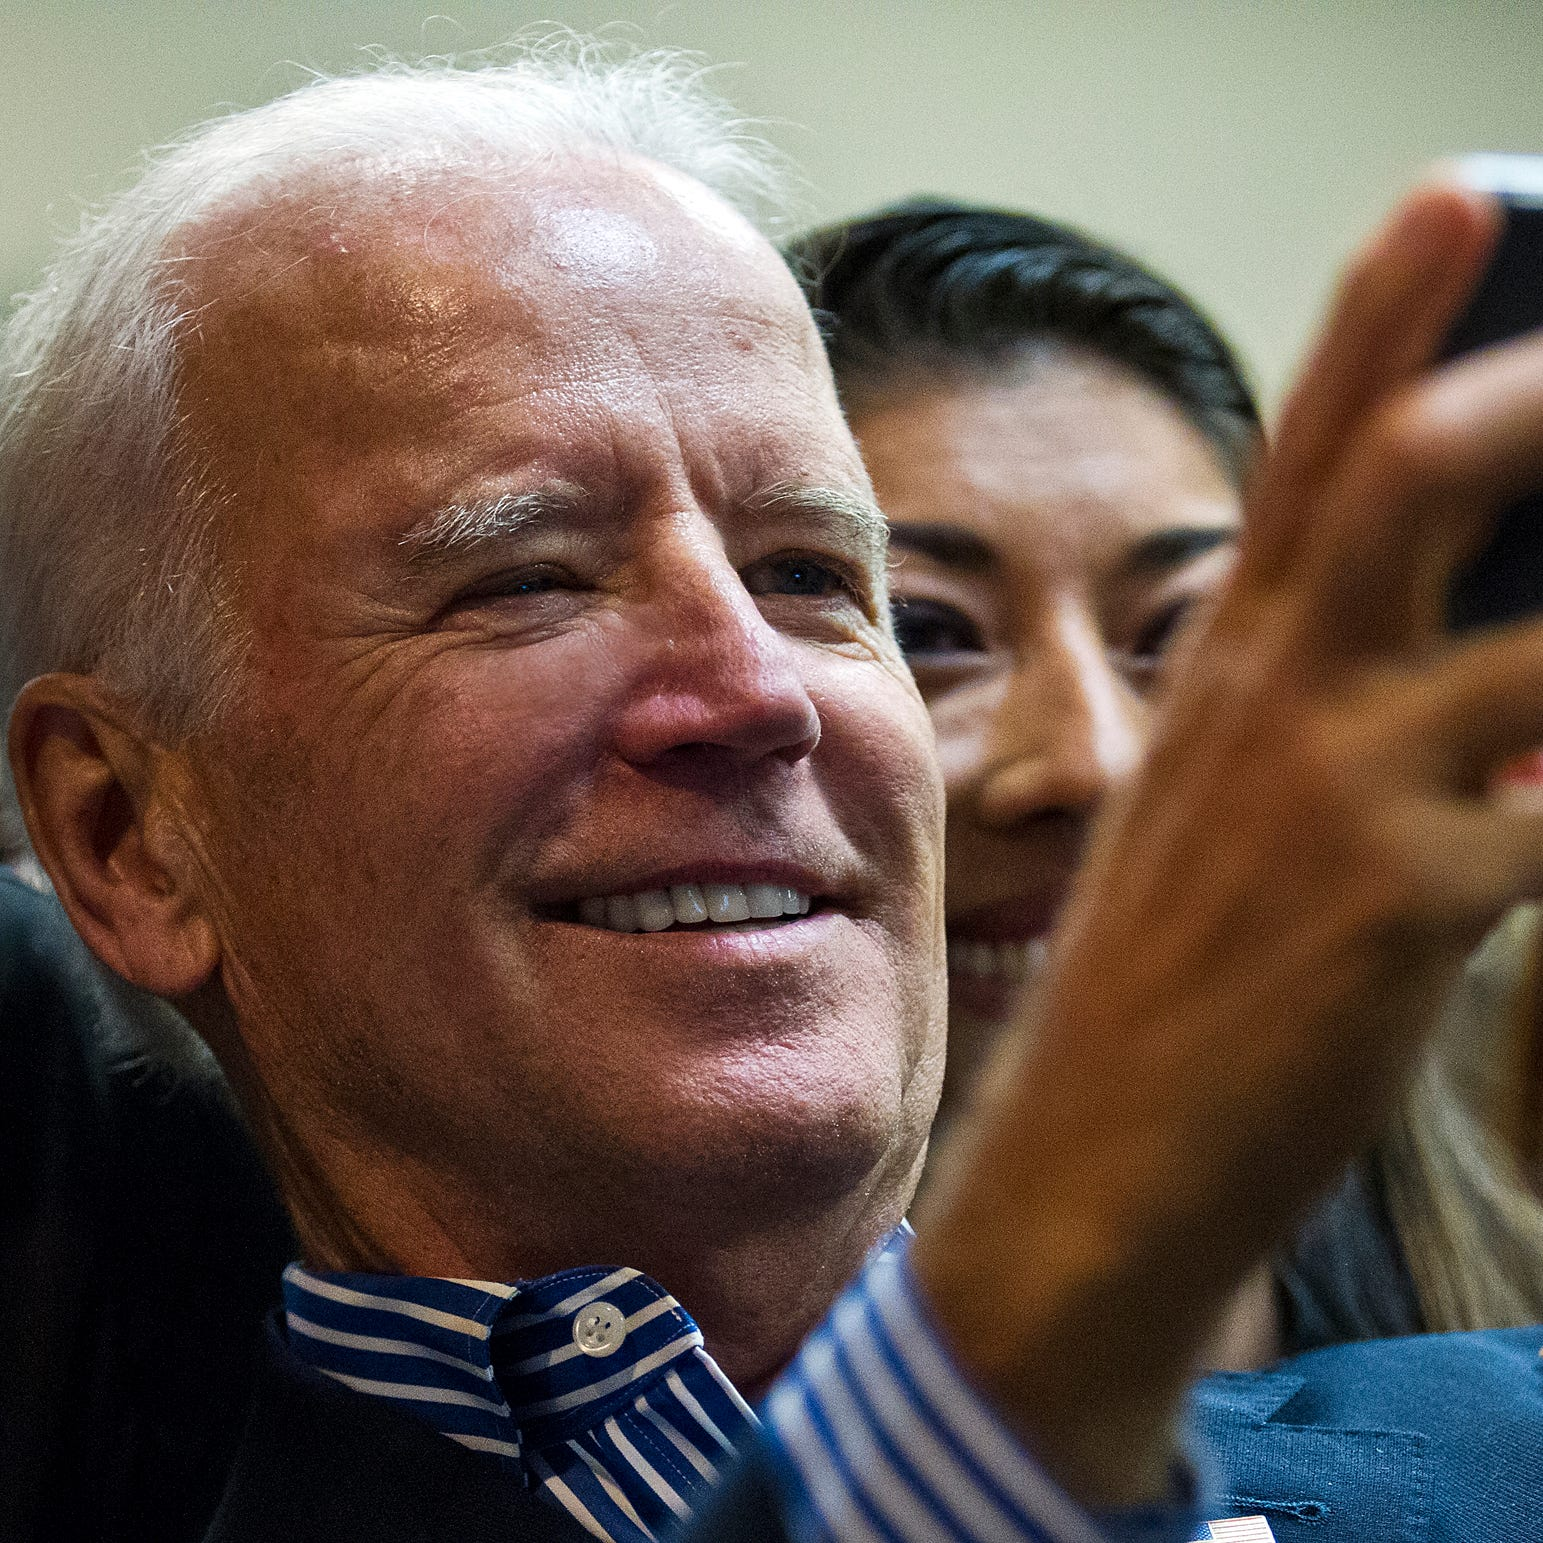 Look at intention behind Biden's 'hands on' approach with women